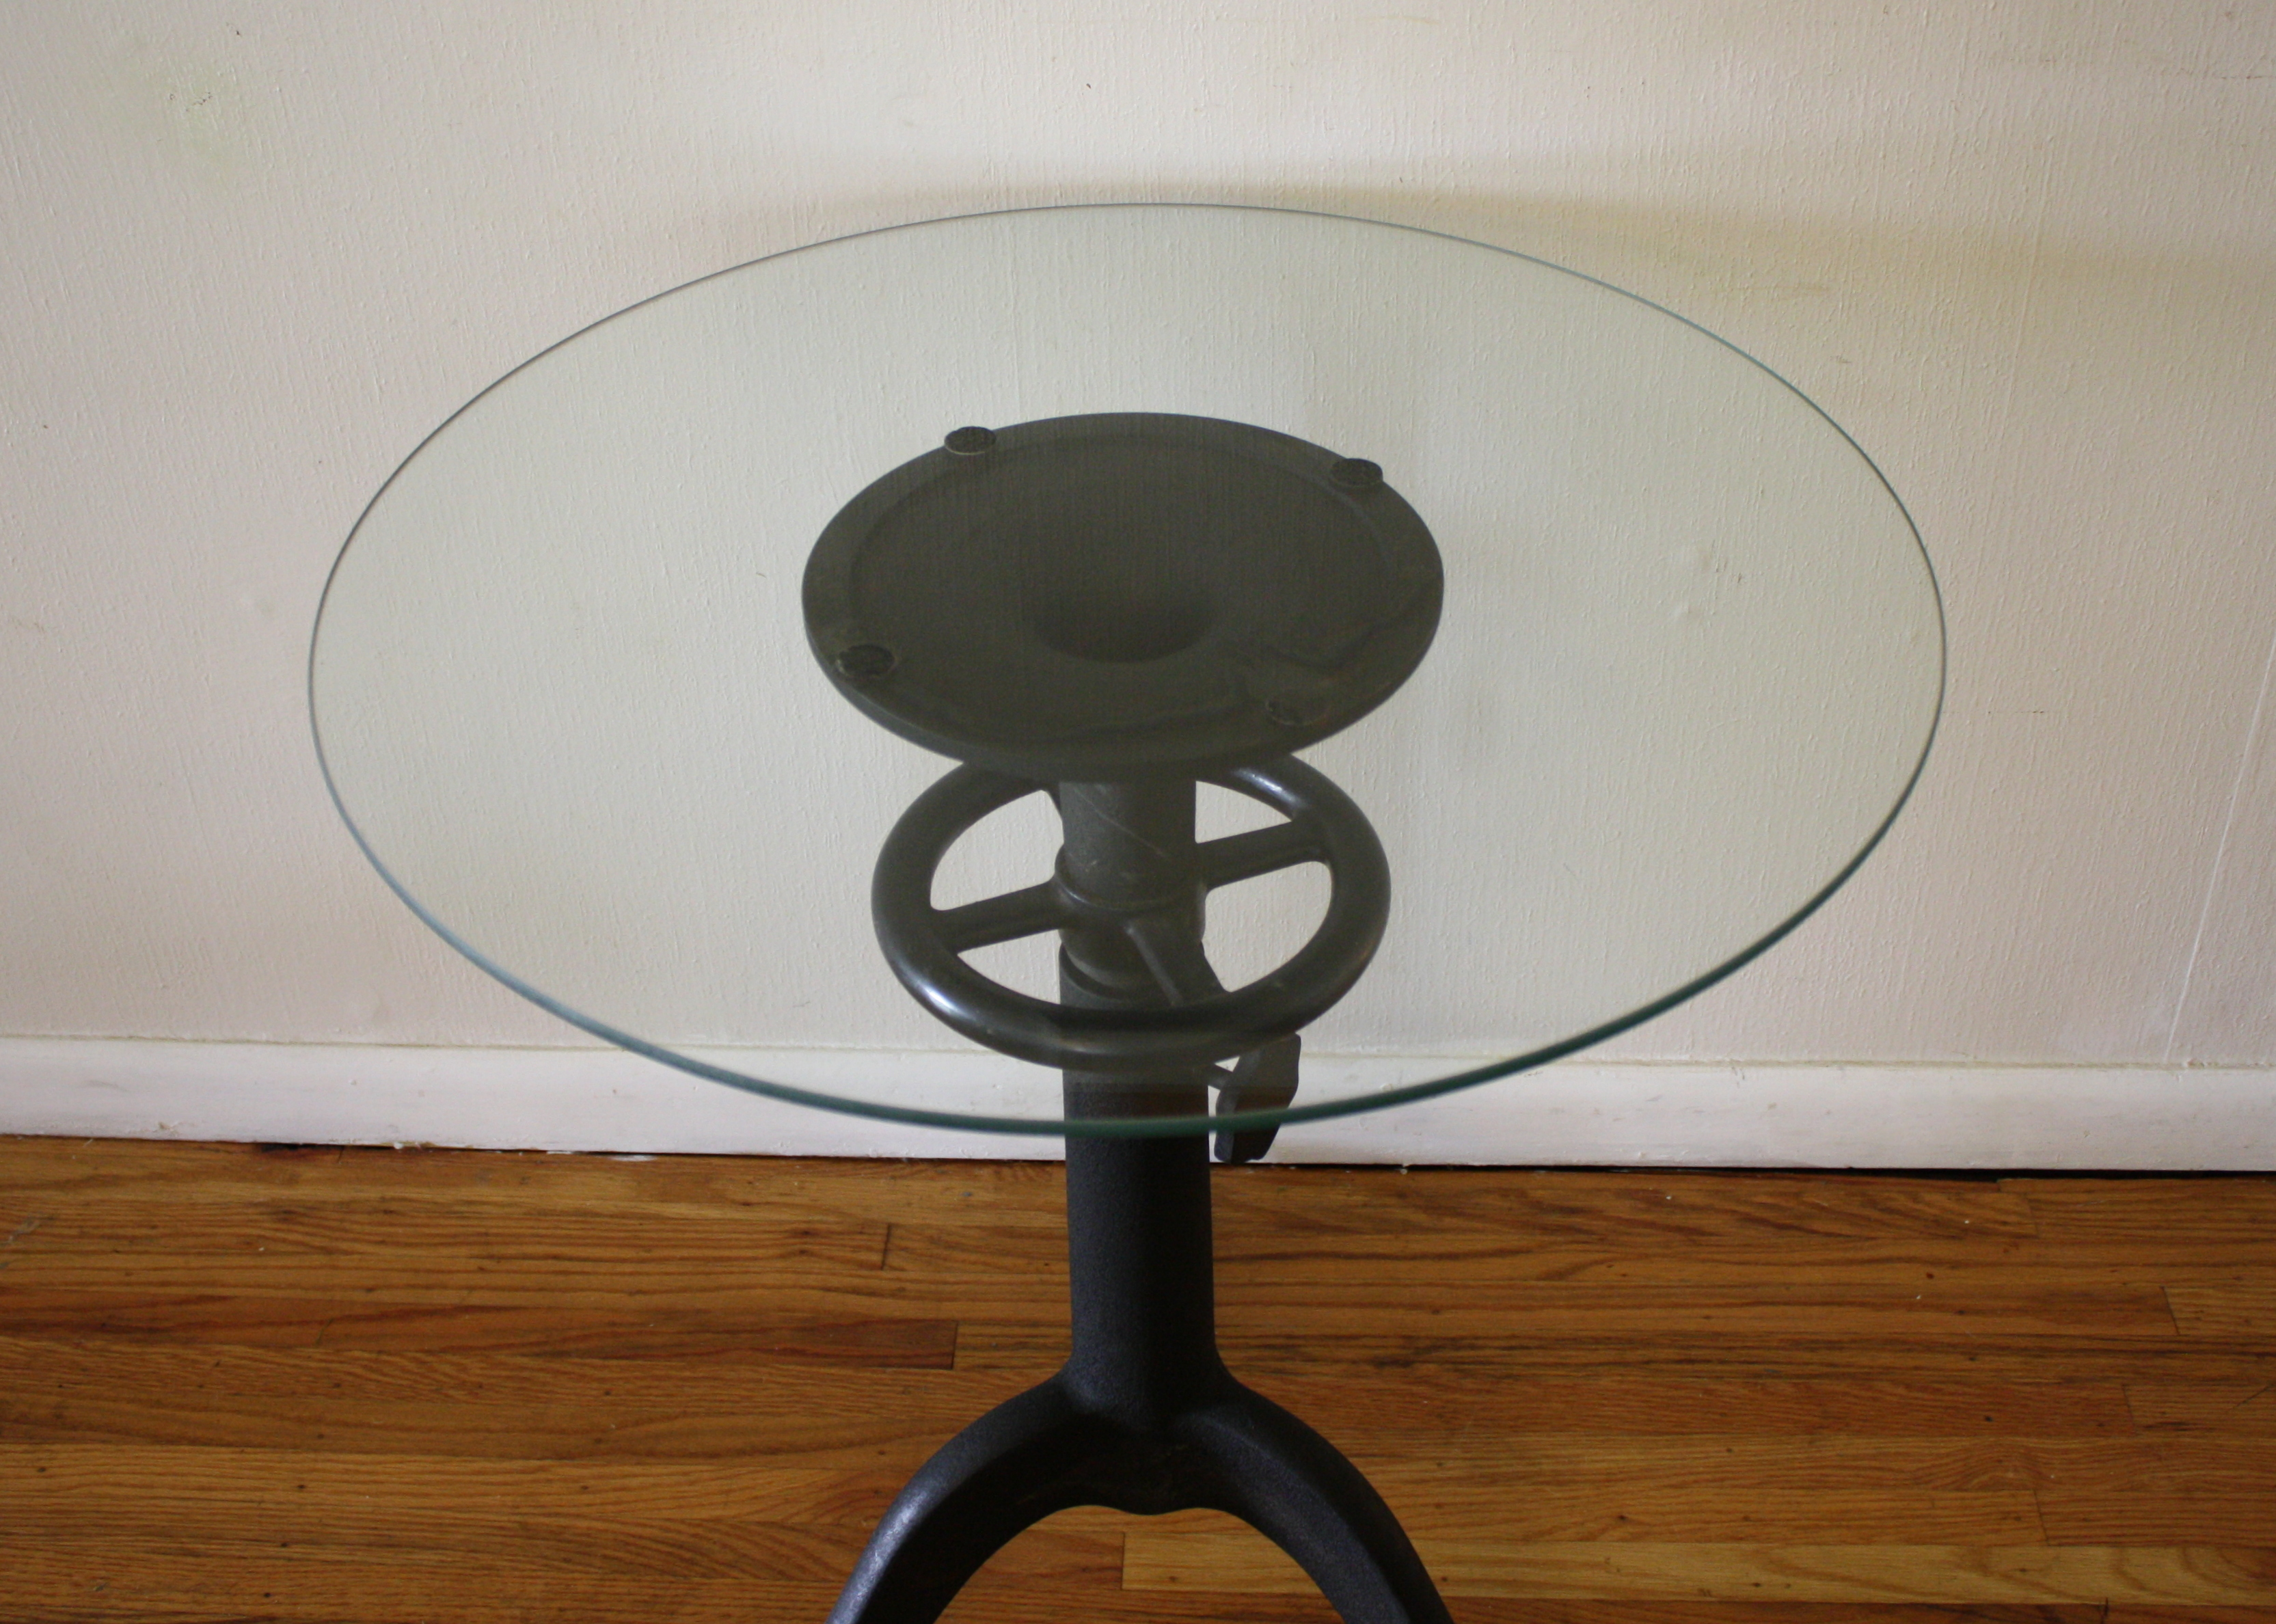 Antique Cast Iron Table with Glass Top u2013 Steampunk Chic : Picked Vintage